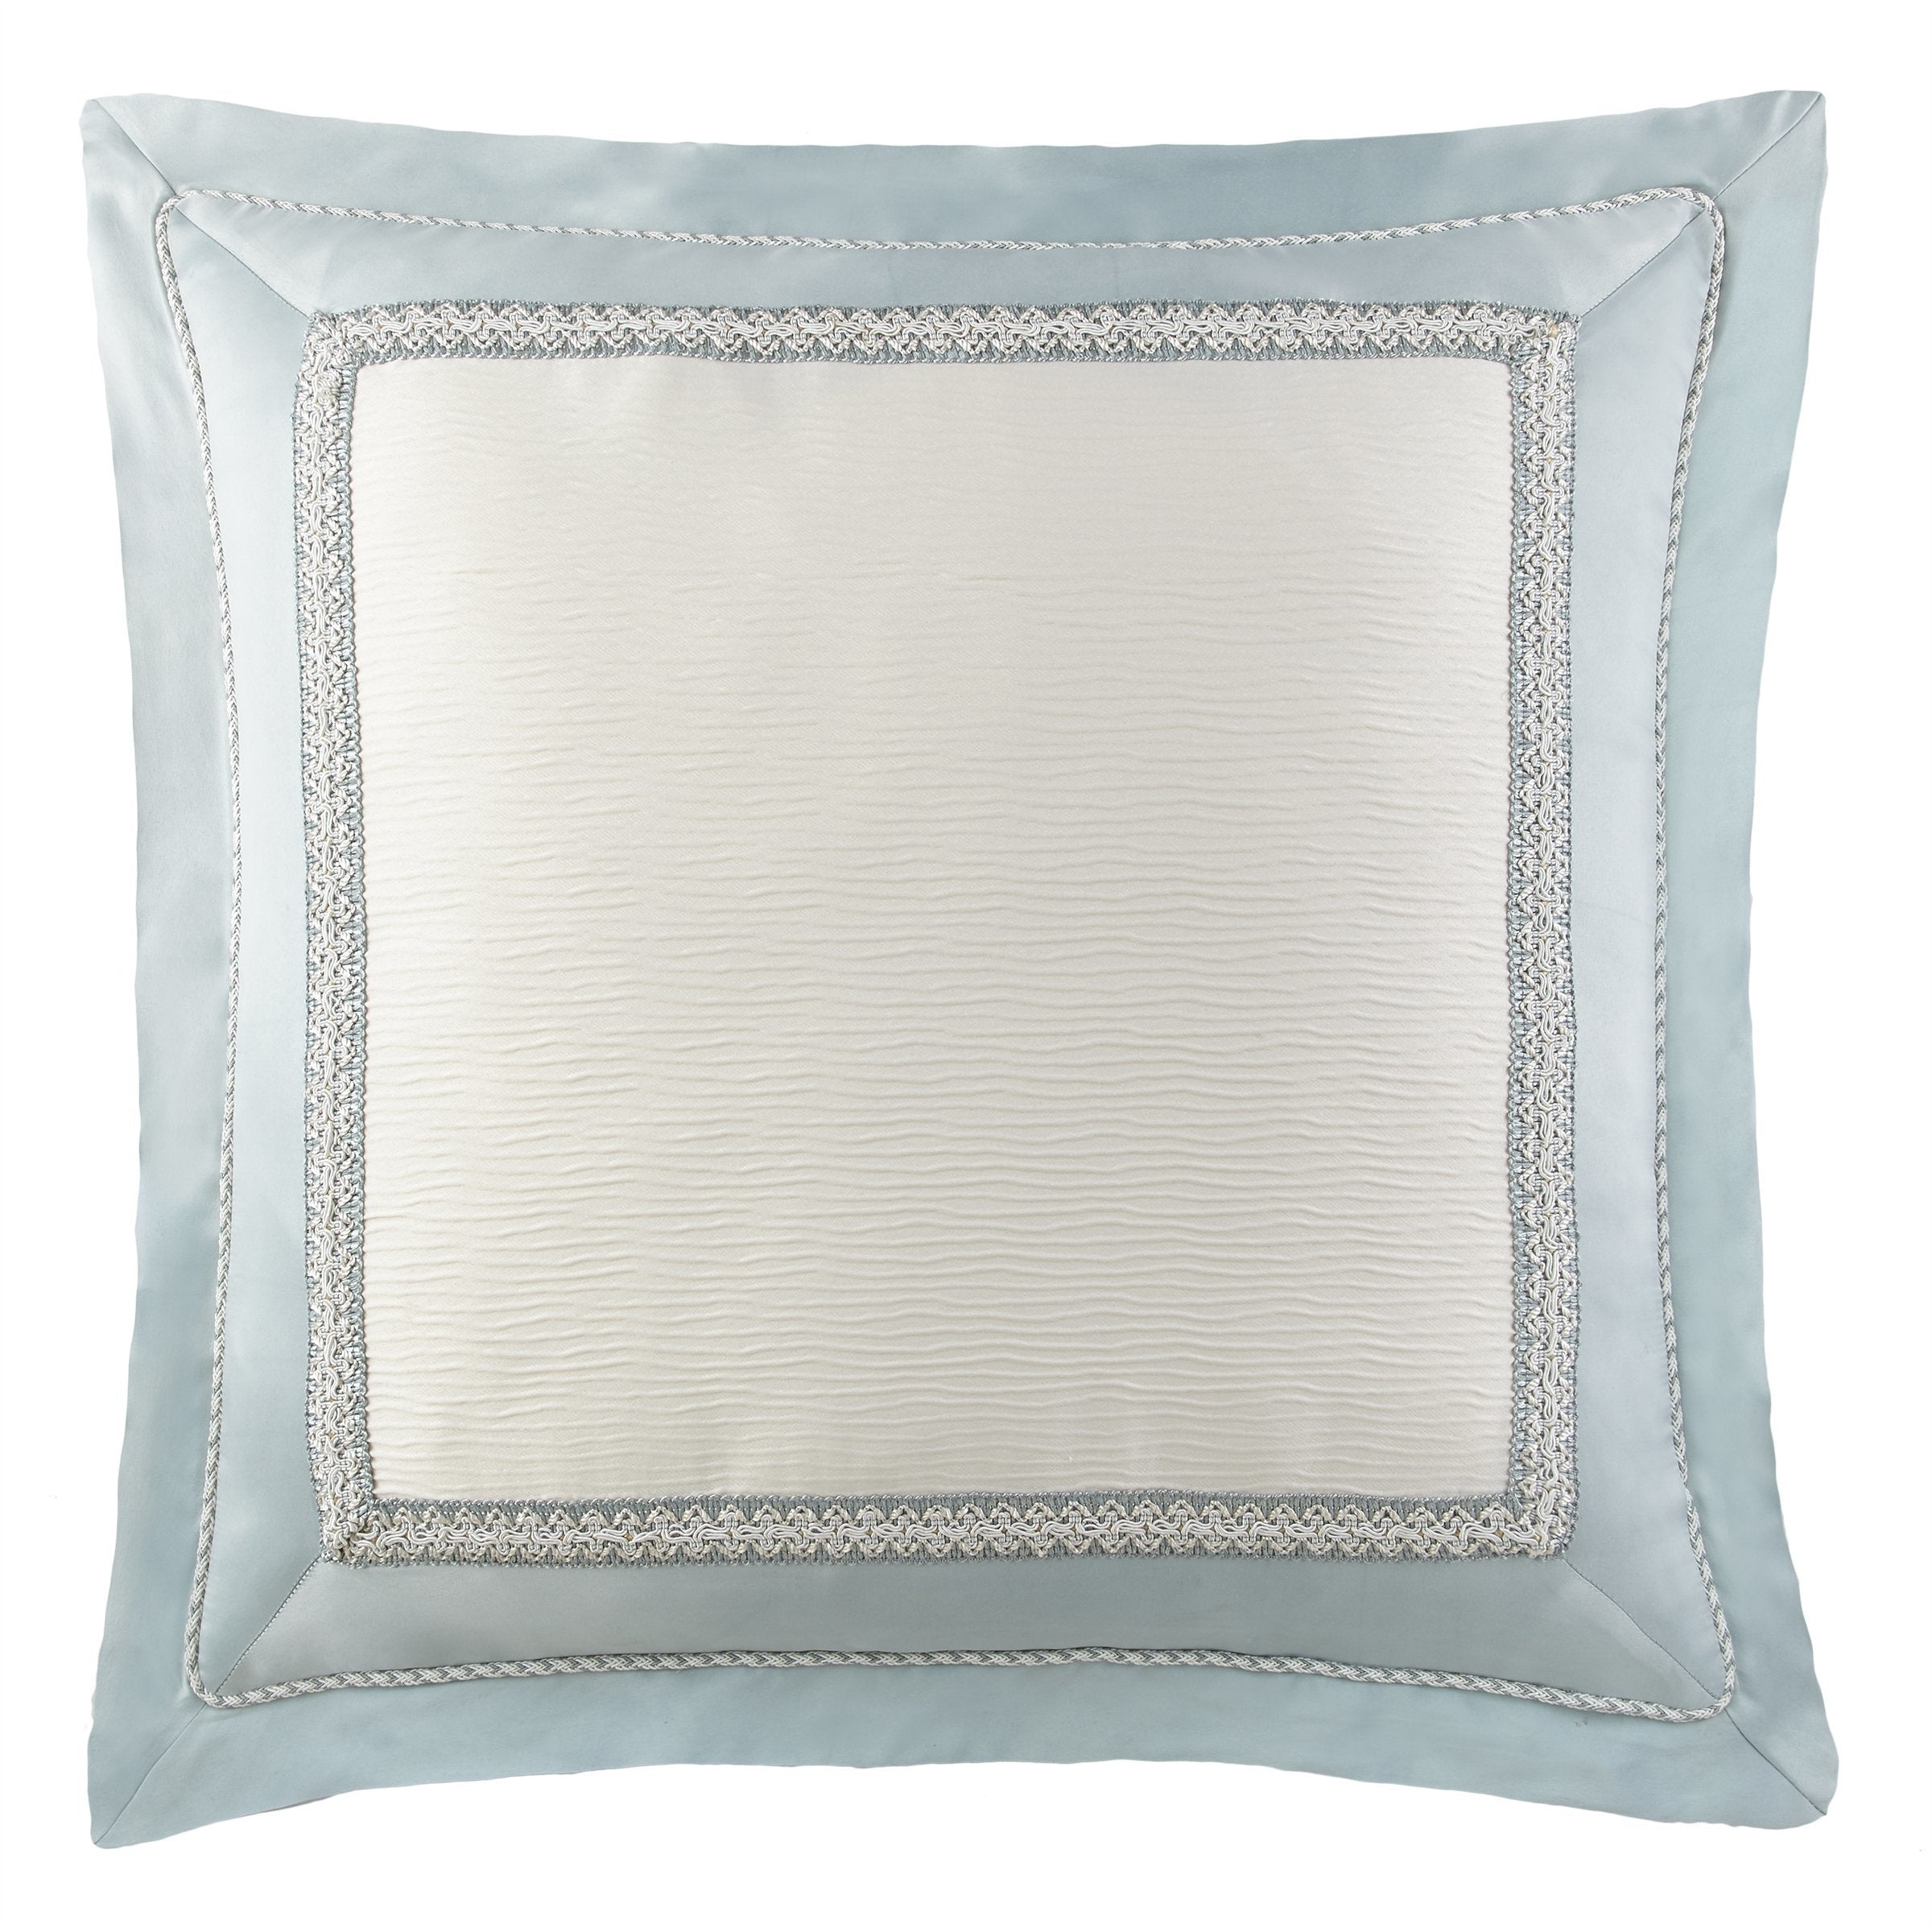 Jonet Cream/Aqua Euro Sham Euro Shams By Waterford